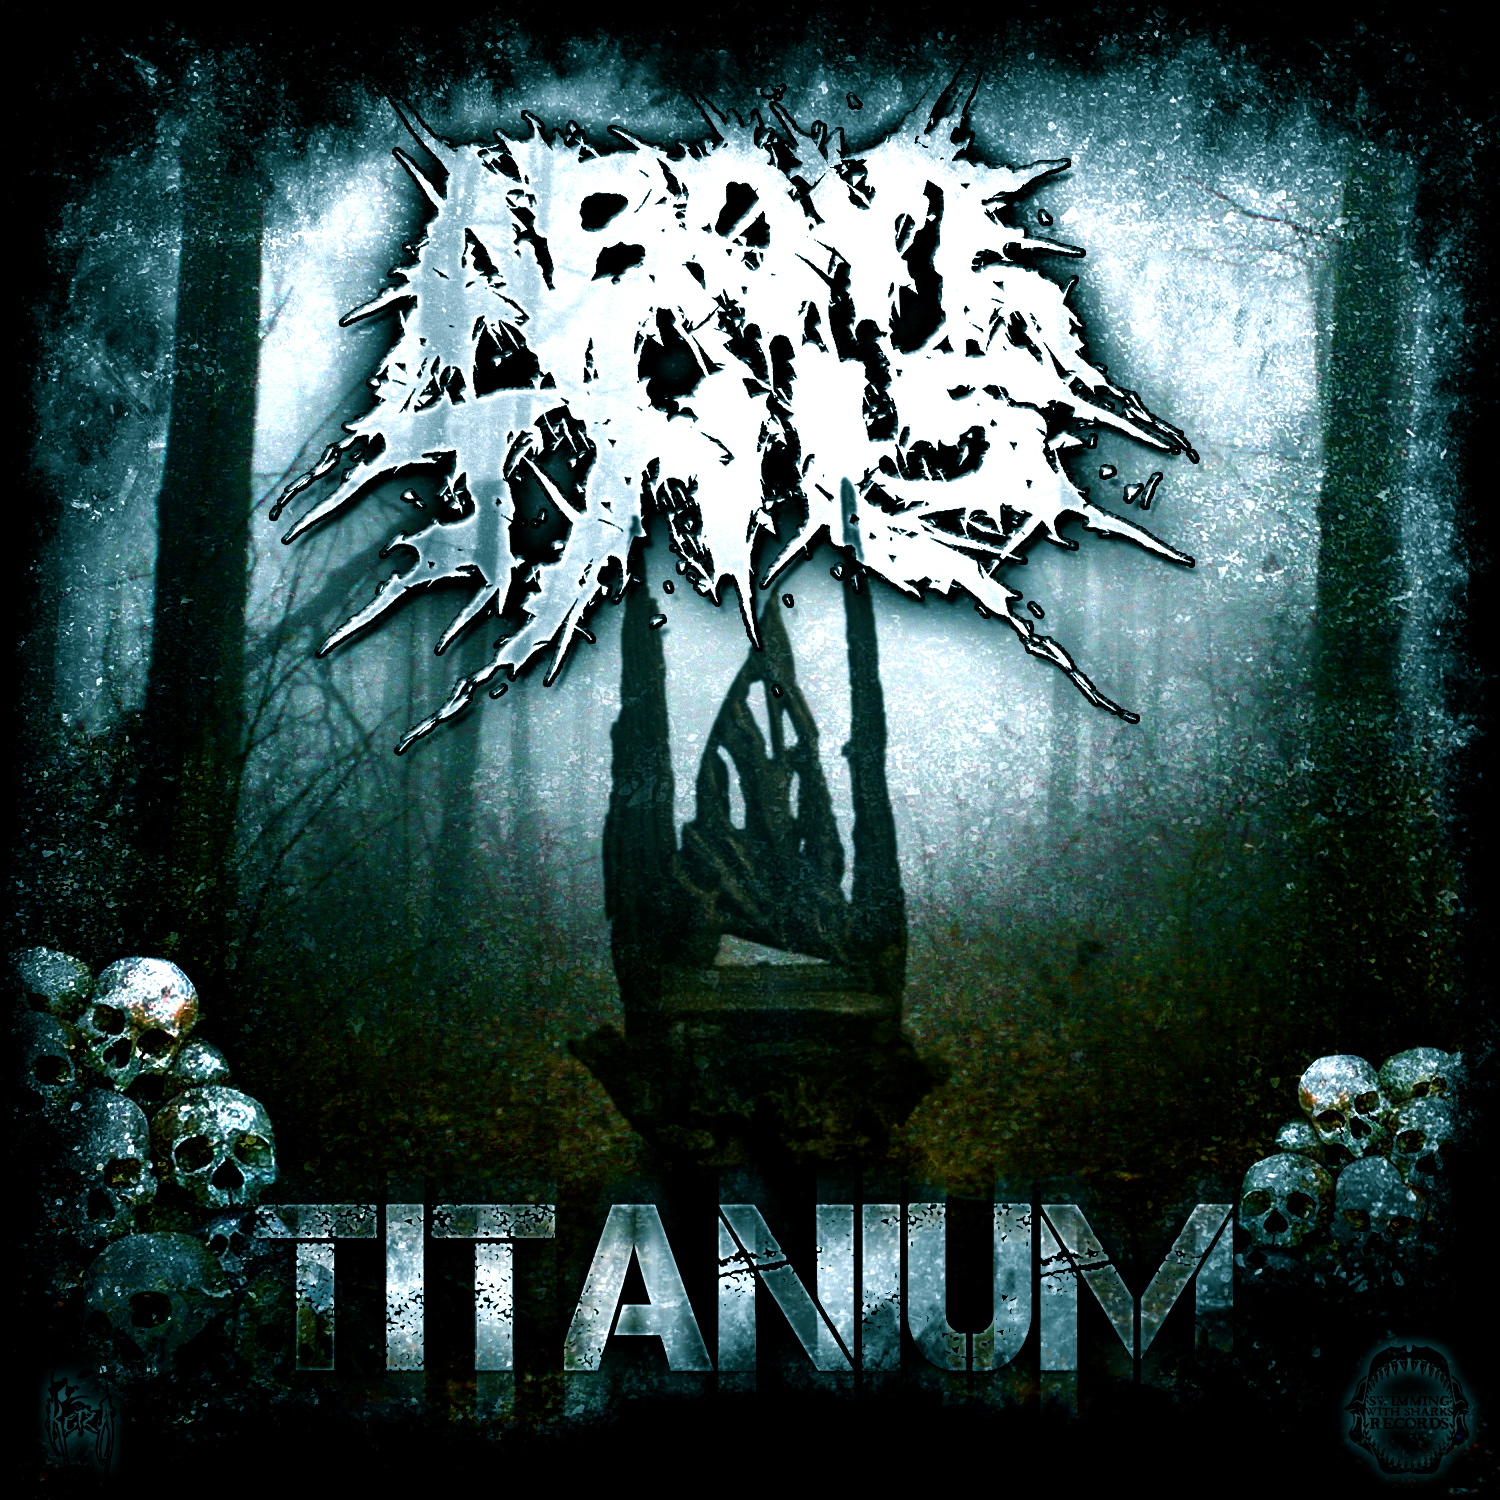 News Added Aug 21, 2012 Metalcore band with some electronic influences. Submitted By Nii Track list: Added Aug 21, 2012 1. Beat Down (Intro) 2. Attaboy 3. Ice Age 4. Cursive Curses 5. Shape Shifter 6. The Way Of The Hand, A Pyro's Revenge 7. There Can Only Be One Second Best! 8. Titanium 9. […]